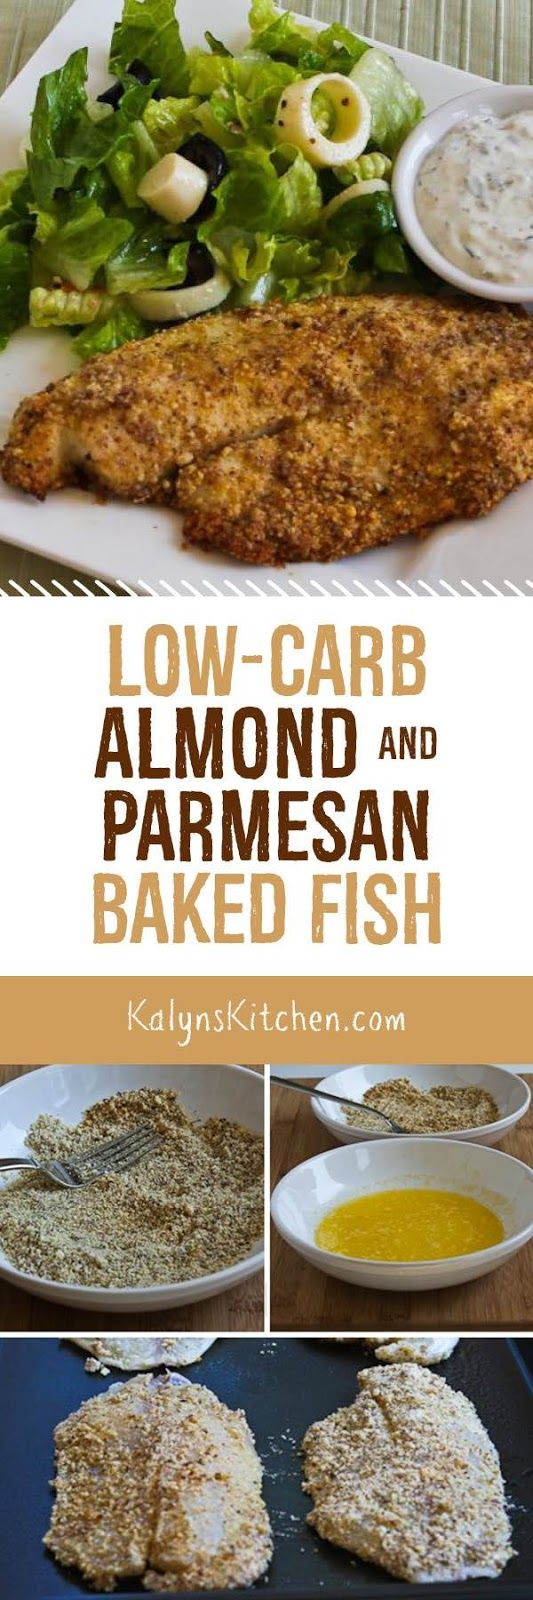 100 baked tilapia recipes on pinterest healthy tilapia for How many carbs in fish